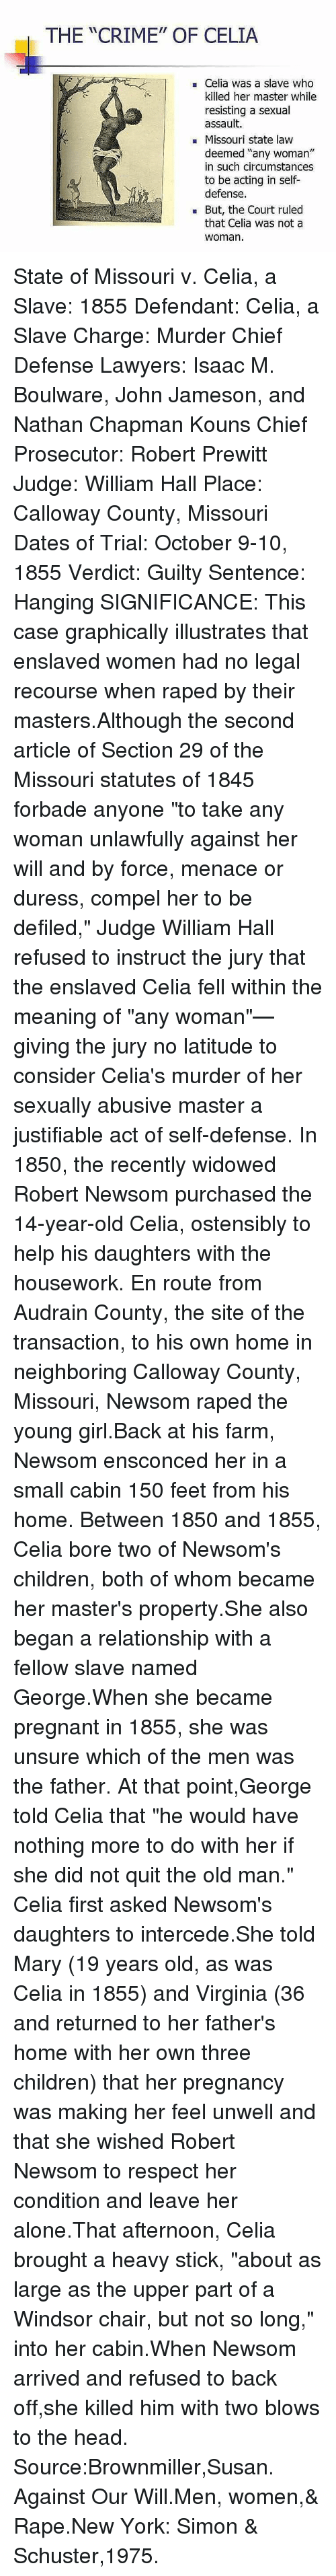 """Housework: THE """"CRIME"""" OF CELIA  Celia was a slave who  killed her master while  resisting a sexual  assault.  Missouri state law  deemed """"any woman""""  in such circumstances  to be acting in self-  defense.  But, the Court ruled  that Celia was not a  Woman. State of Missouri v. Celia, a Slave: 1855 Defendant: Celia, a Slave Charge: Murder Chief Defense Lawyers: Isaac M. Boulware, John Jameson, and Nathan Chapman Kouns Chief Prosecutor: Robert Prewitt Judge: William Hall Place: Calloway County, Missouri Dates of Trial: October 9-10, 1855 Verdict: Guilty Sentence: Hanging SIGNIFICANCE: This case graphically illustrates that enslaved women had no legal recourse when raped by their masters.Although the second article of Section 29 of the Missouri statutes of 1845 forbade anyone """"to take any woman unlawfully against her will and by force, menace or duress, compel her to be defiled,"""" Judge William Hall refused to instruct the jury that the enslaved Celia fell within the meaning of """"any woman""""—giving the jury no latitude to consider Celia's murder of her sexually abusive master a justifiable act of self-defense. In 1850, the recently widowed Robert Newsom purchased the 14-year-old Celia, ostensibly to help his daughters with the housework. En route from Audrain County, the site of the transaction, to his own home in neighboring Calloway County, Missouri, Newsom raped the young girl.Back at his farm, Newsom ensconced her in a small cabin 150 feet from his home. Between 1850 and 1855, Celia bore two of Newsom's children, both of whom became her master's property.She also began a relationship with a fellow slave named George.When she became pregnant in 1855, she was unsure which of the men was the father. At that point,George told Celia that """"he would have nothing more to do with her if she did not quit the old man."""" Celia first asked Newsom's daughters to intercede.She told Mary (19 years old, as was Celia in 1855) and Virginia (36 and returned to her father's home with her """